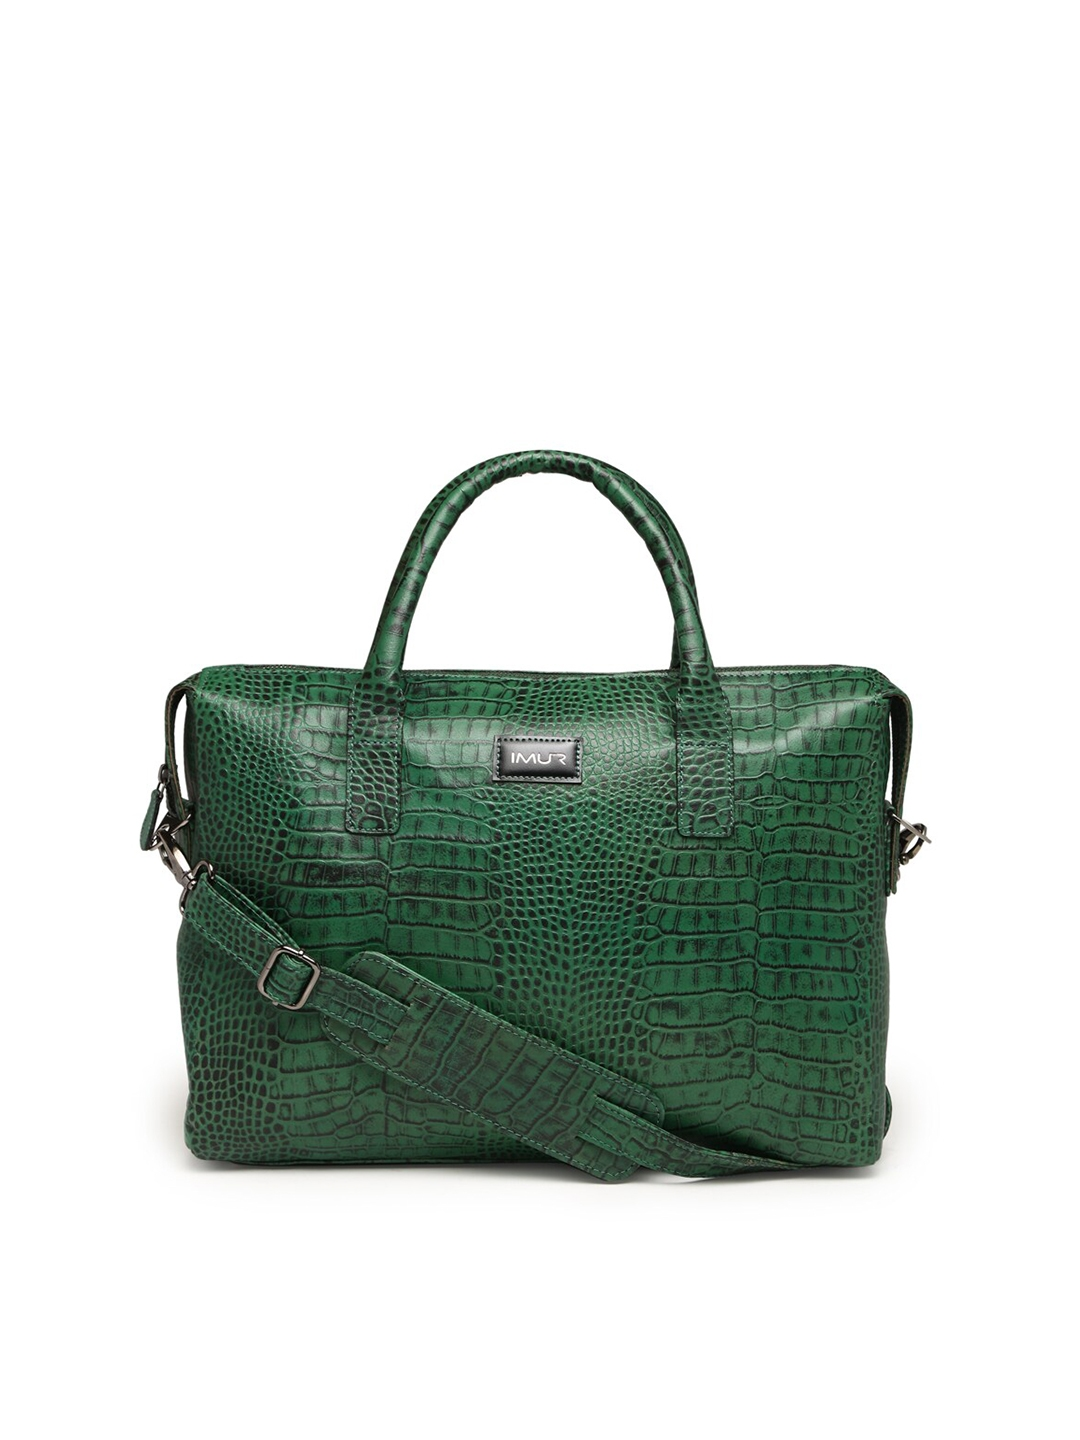 IMUR Unisex Green Textured Leather 15 inch Laptop Bag